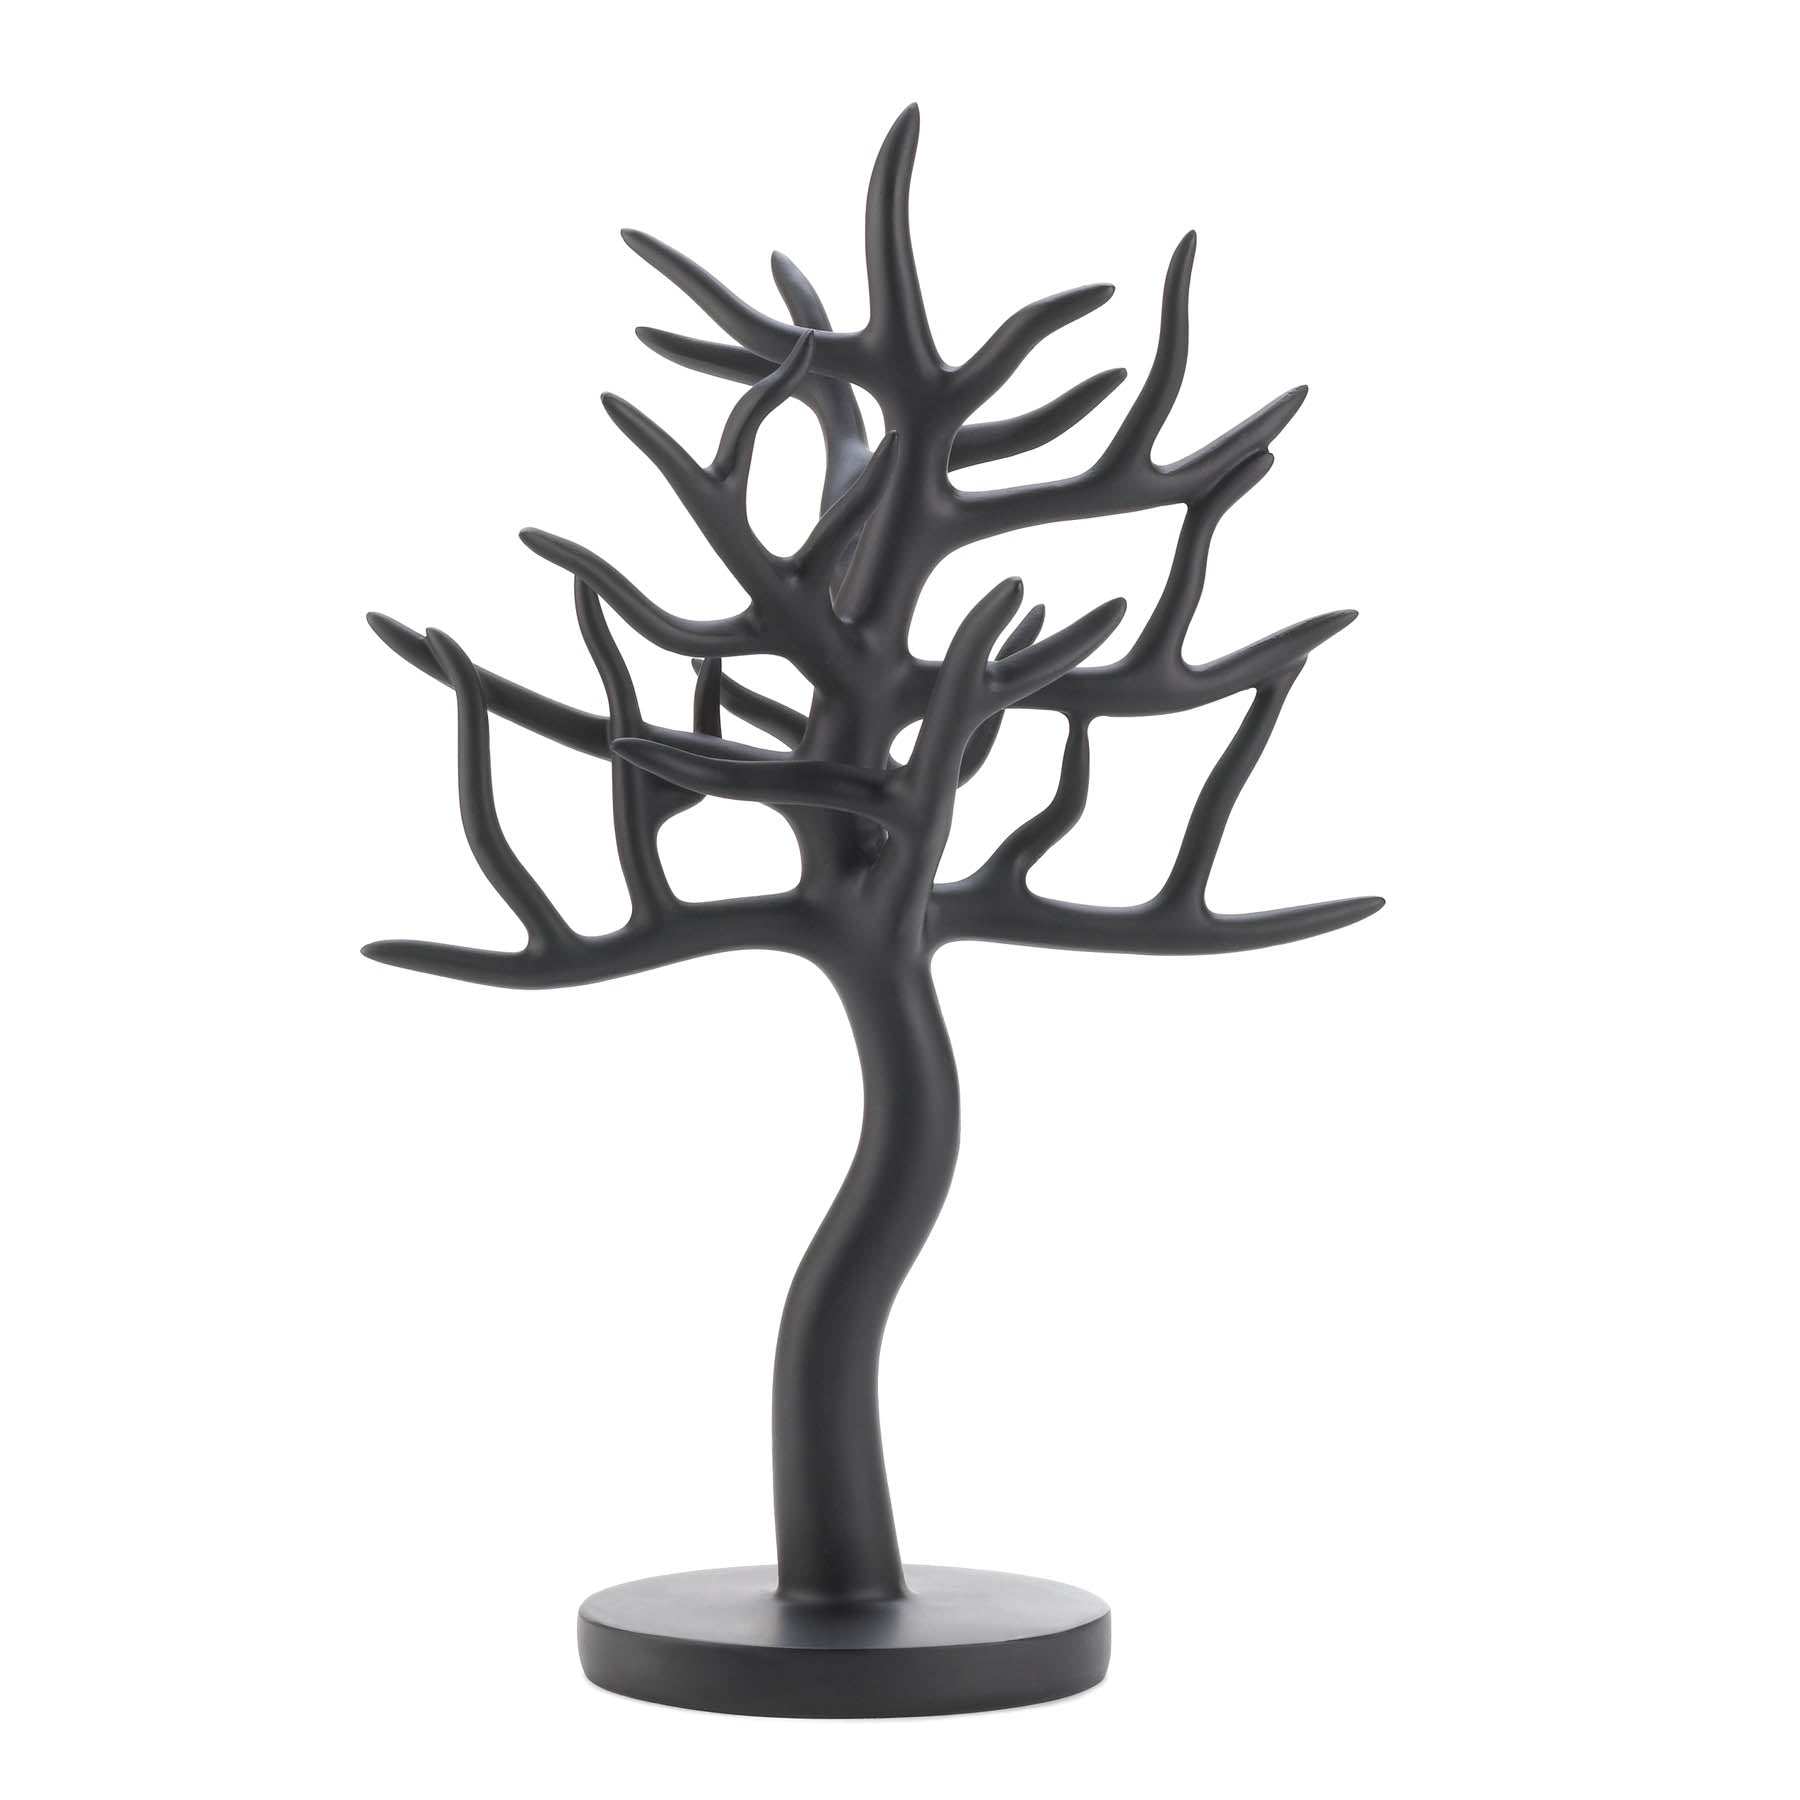 Accent Plus Black Tree Jewelry Stand - 10015365